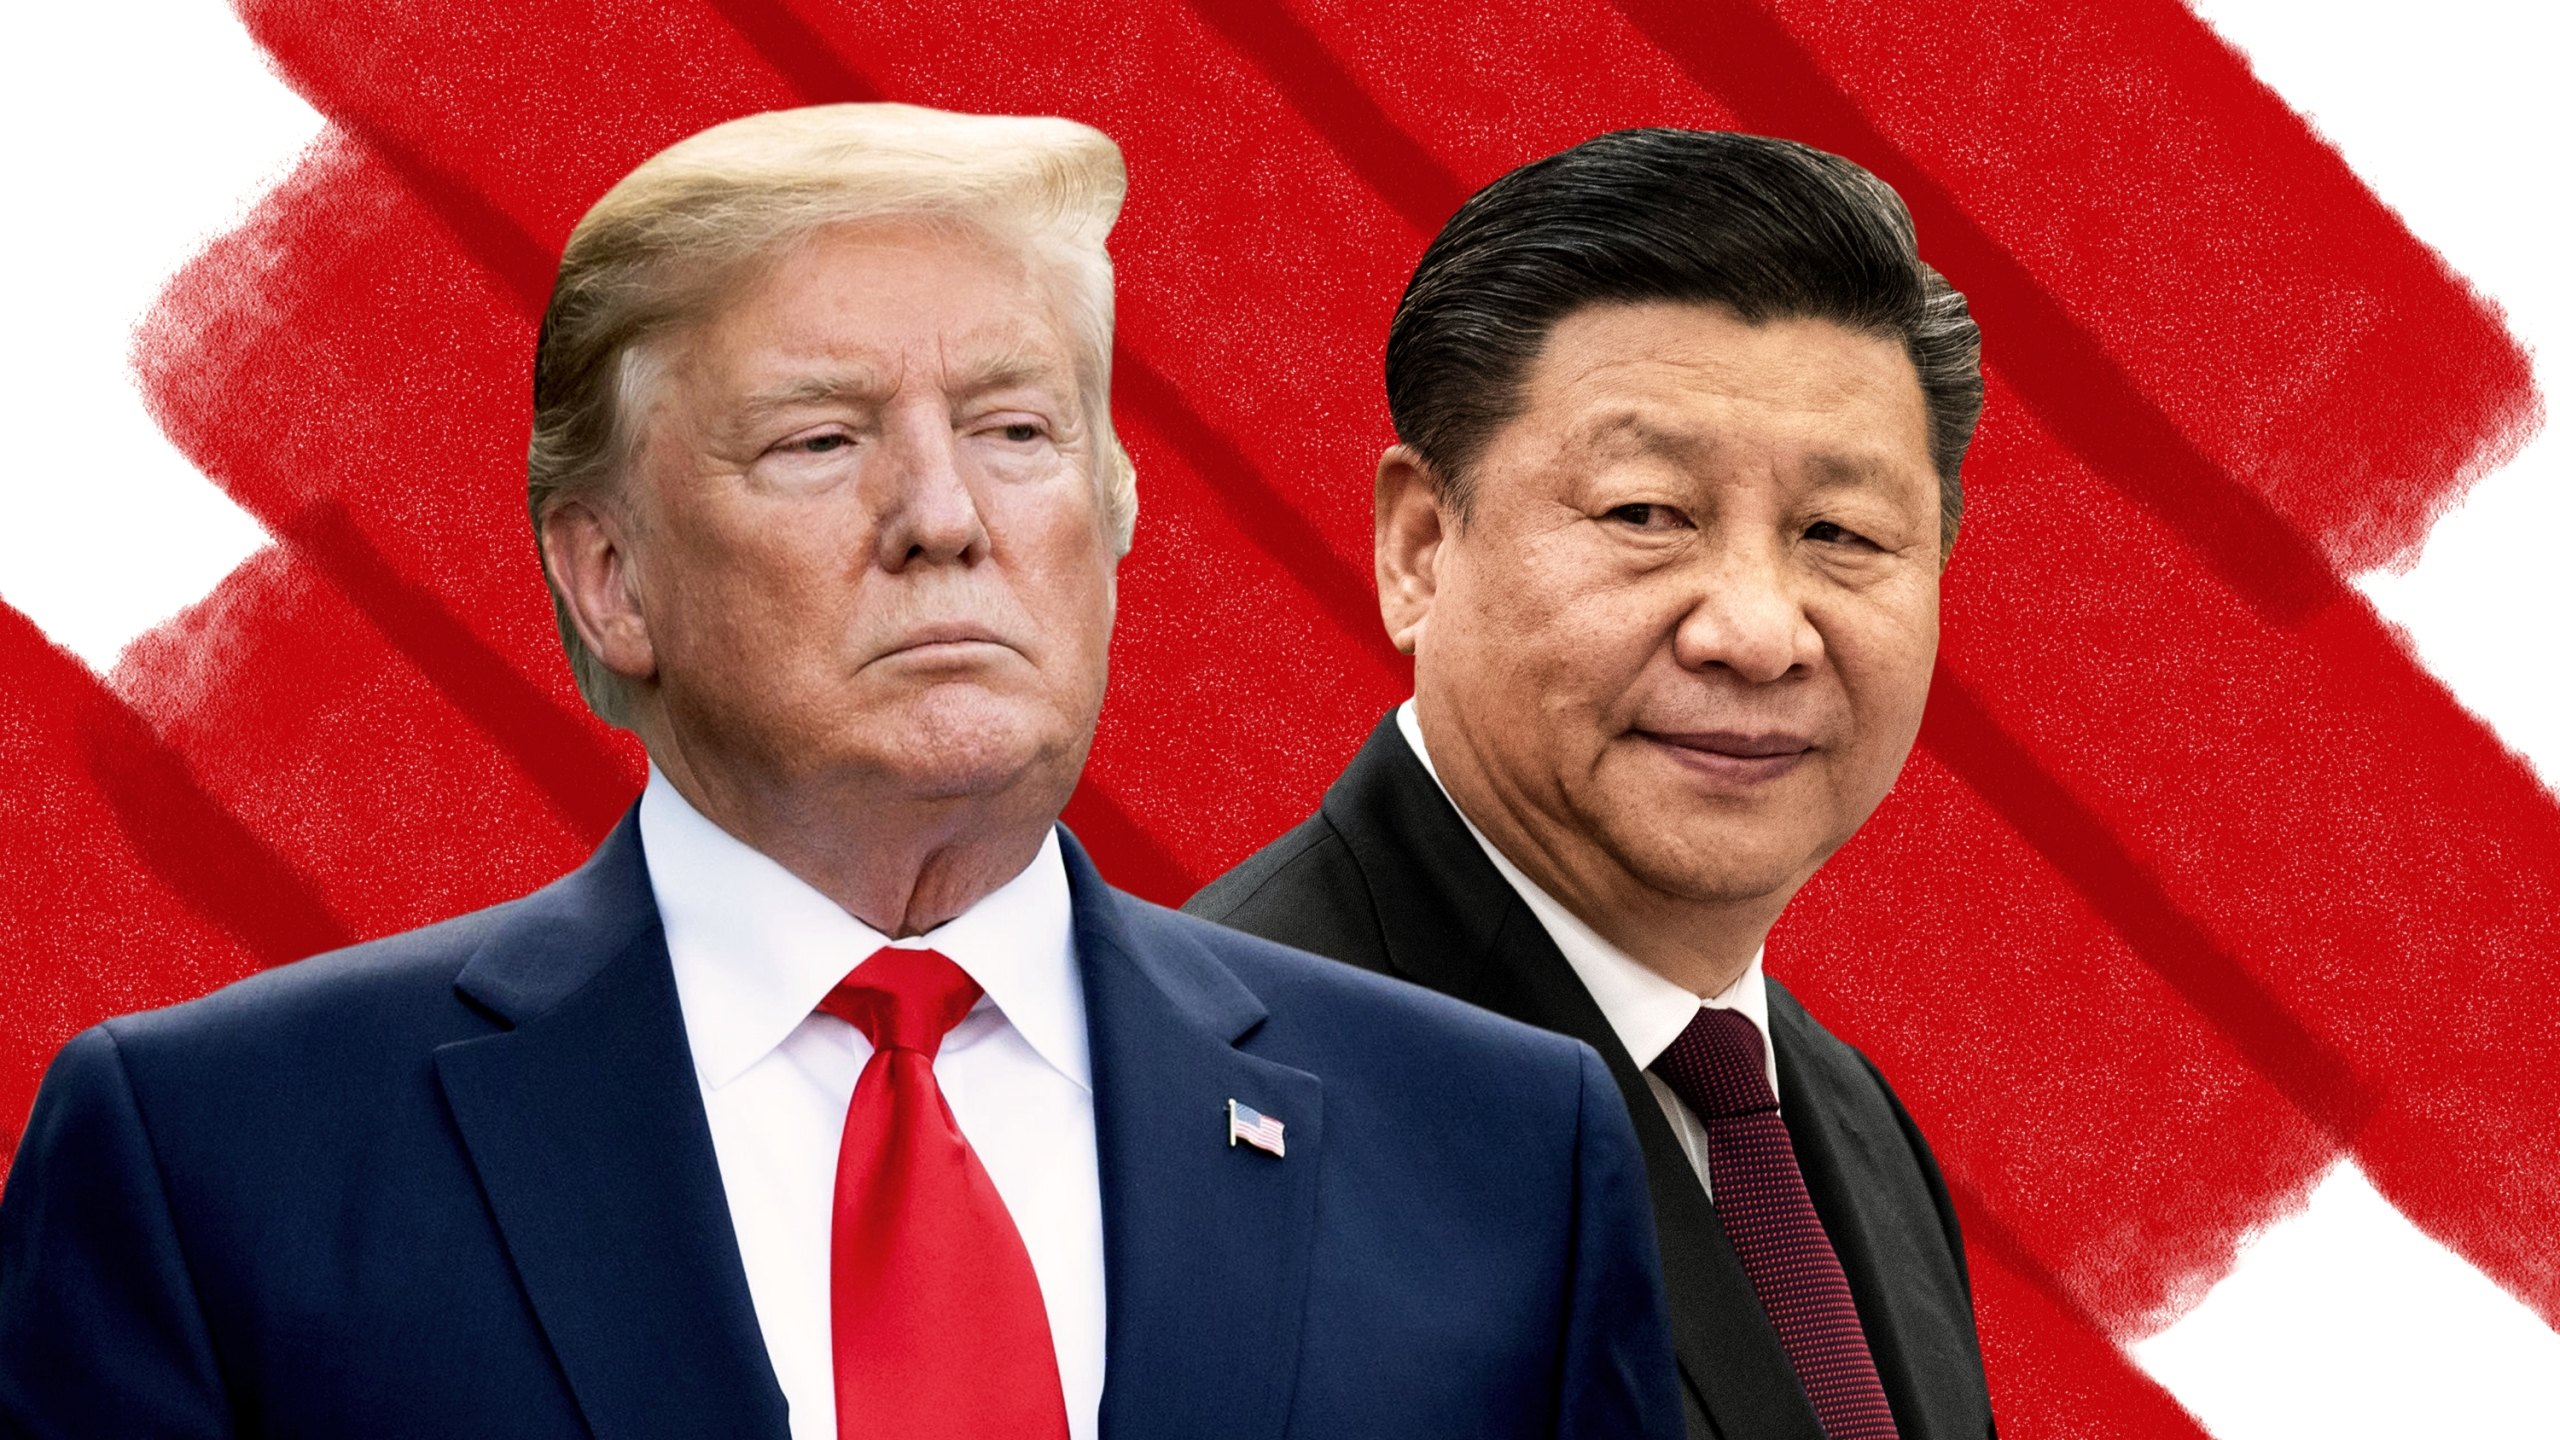 The Trump administration is formulating a long-term plan to punish China on multiple fronts for the coronavirus pandemic, injecting a rancorous new element into a critical relationship already on a steep downward slide. (Getty Images/CNN)